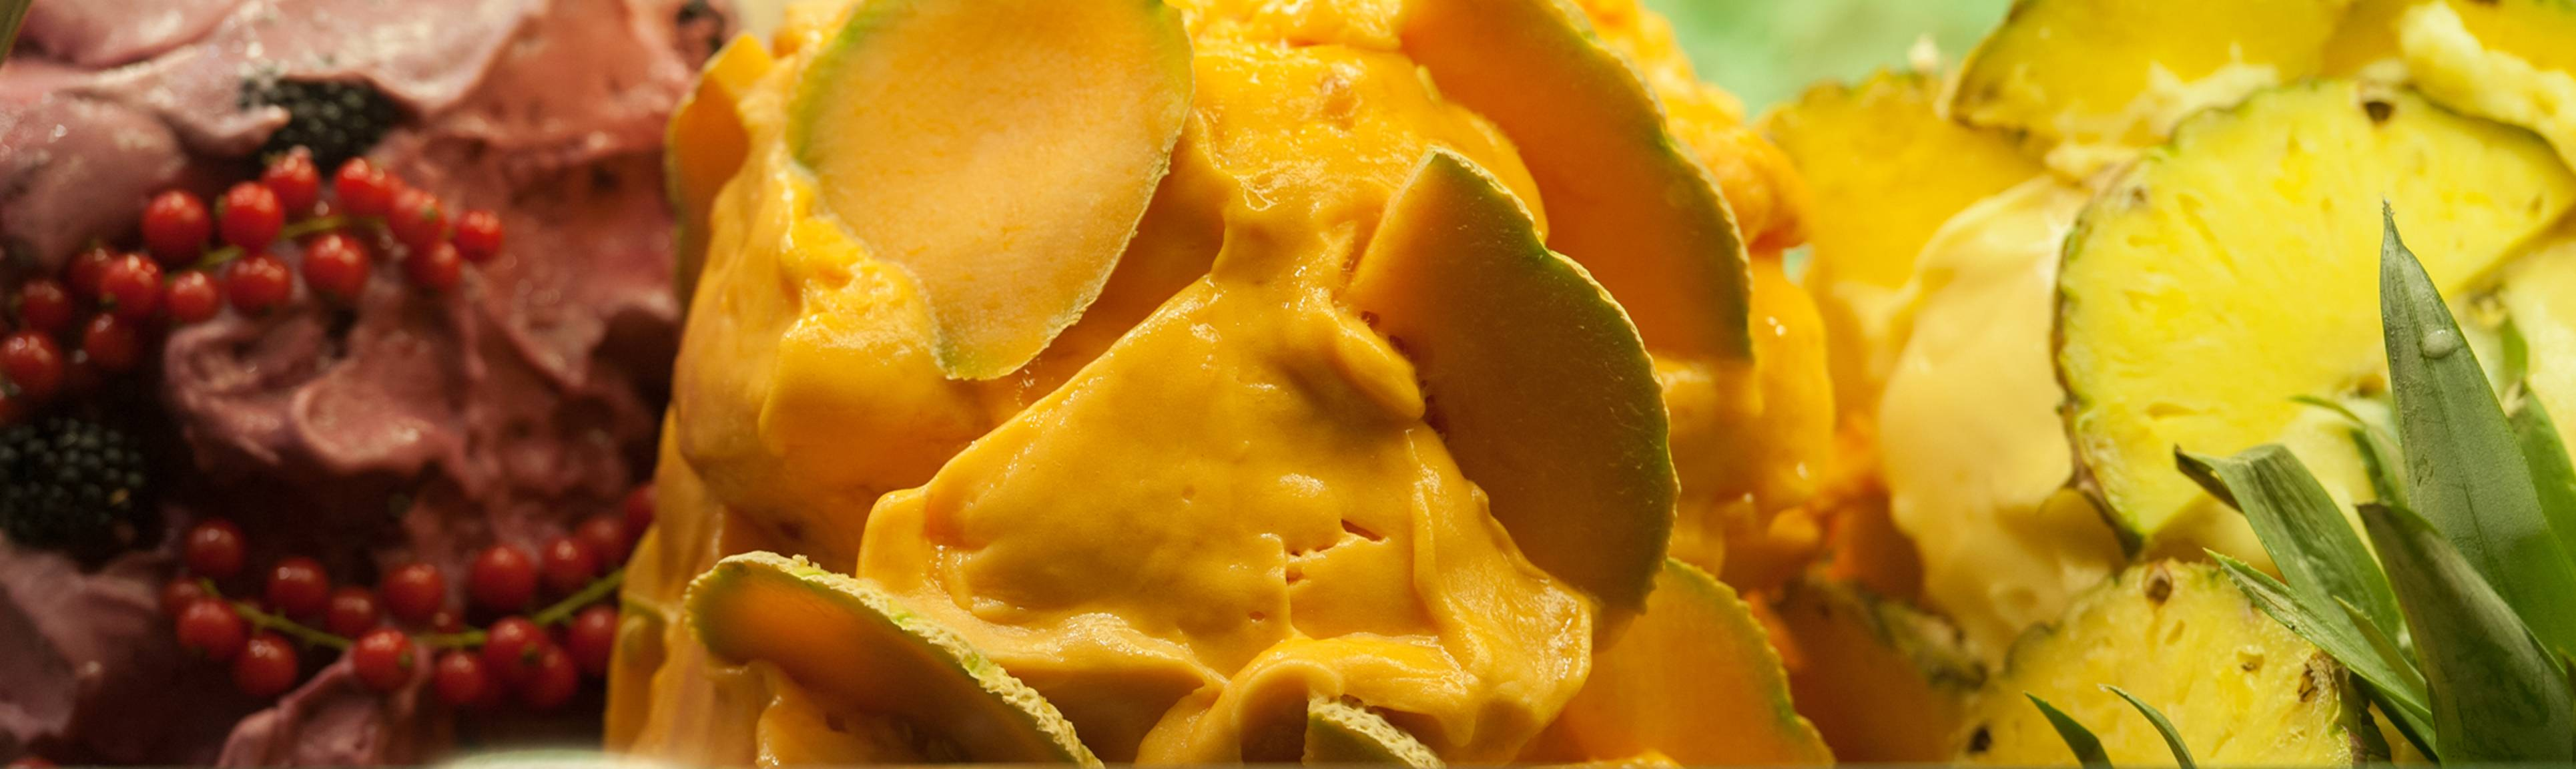 Detail view of creamy canteloupe melon in Florence market